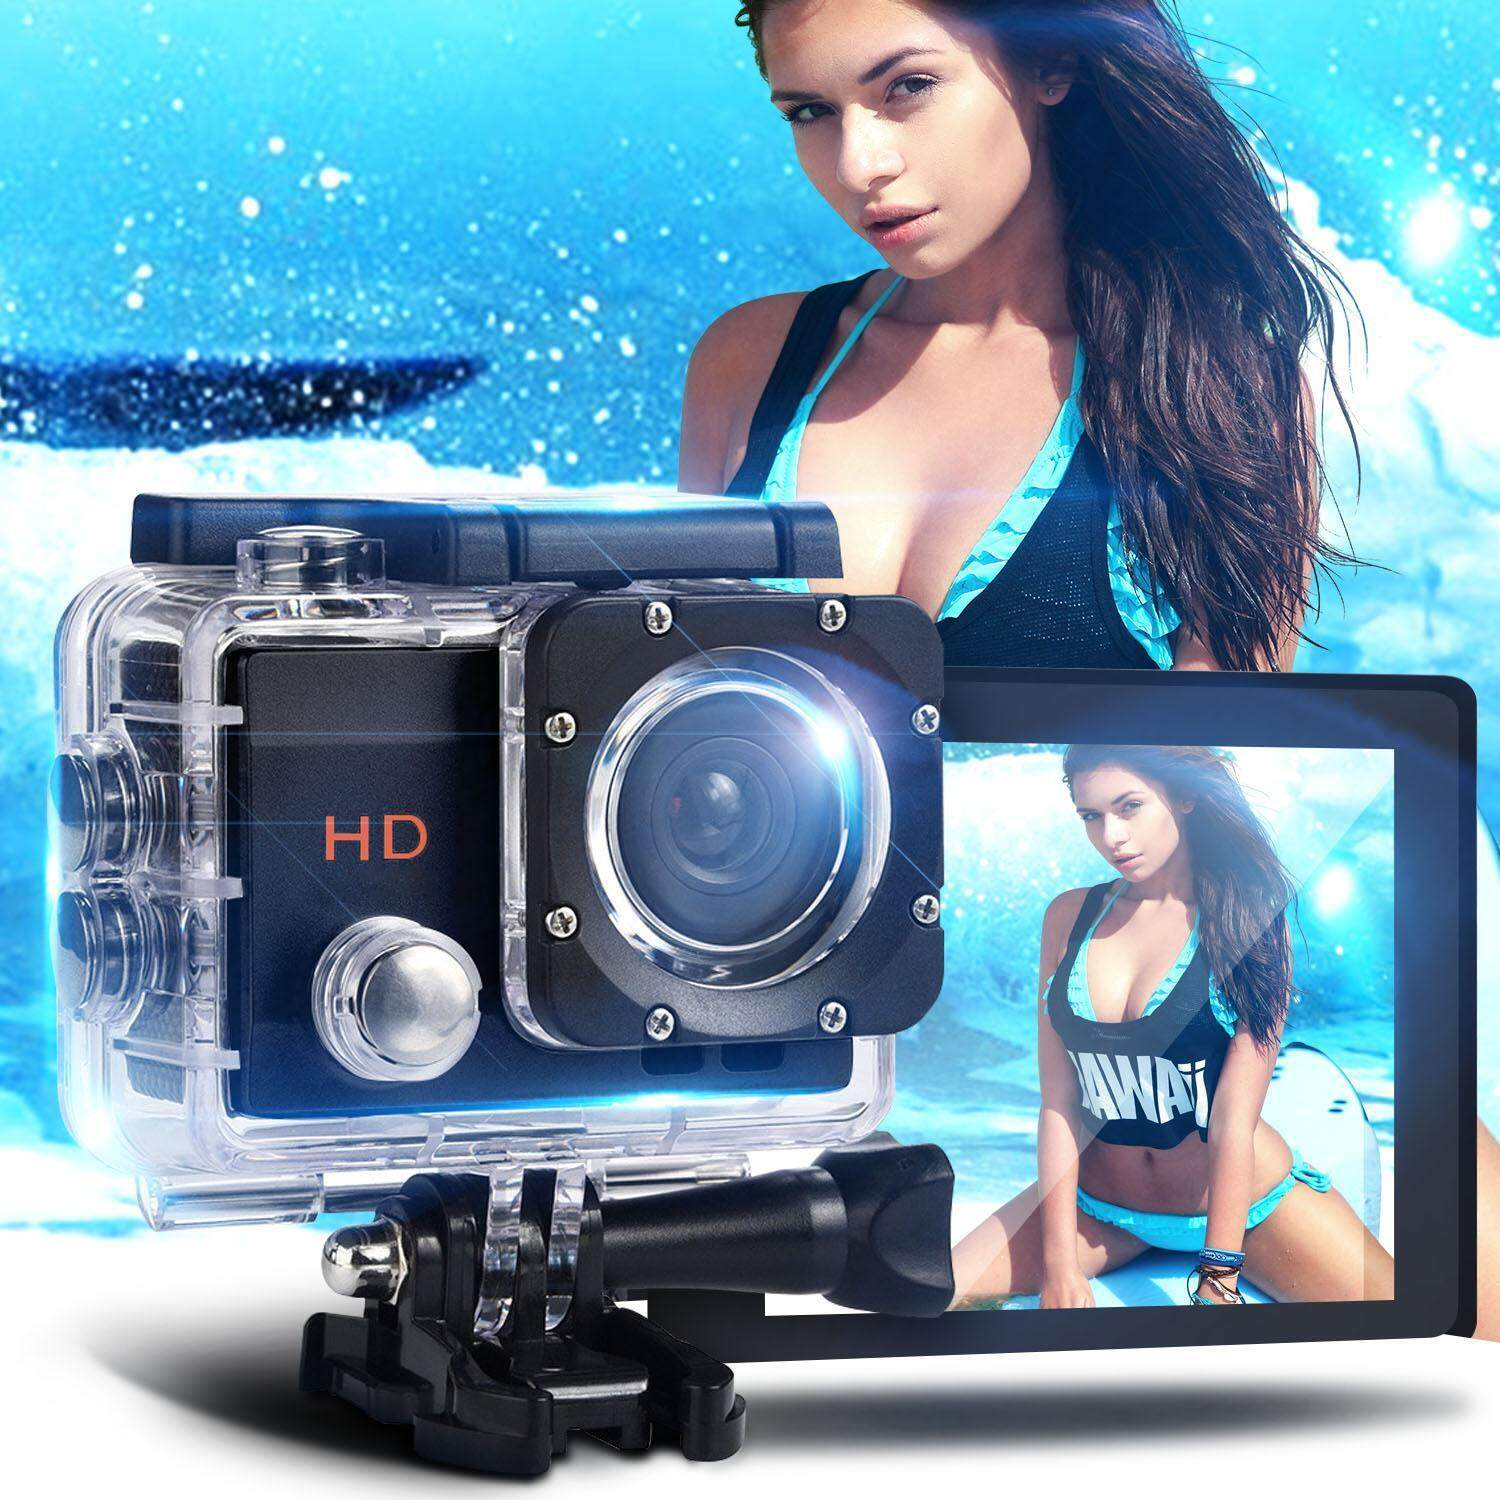 Sport Action Camera HD 1080P 2 0 LCD Screen Action Cam with Waterproof Case